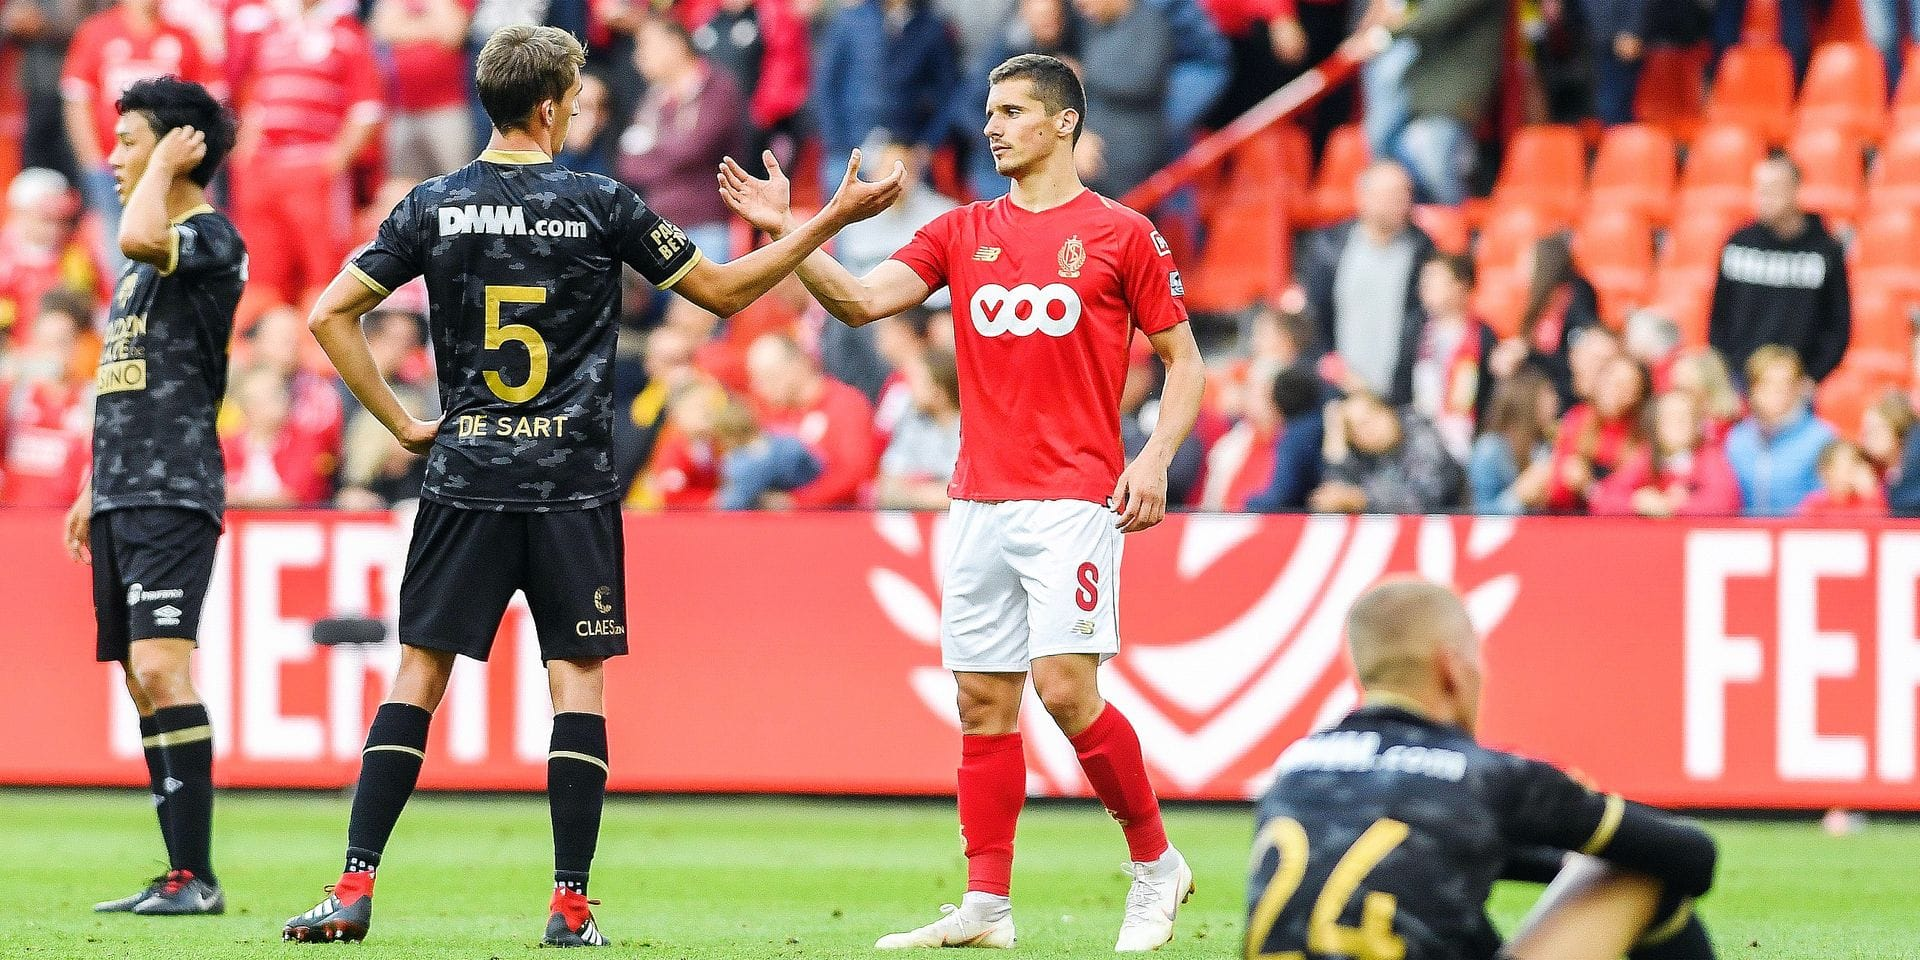 STVV's Alexis De Sart and Standard's Gojko Cimirot pictured after the Jupiler Pro League match between Standard de Liege and STVV, in Liege, Saturday 25 August 2018, on the fifth day of the Jupiler Pro League, the Belgian soccer championship season 2018-2019. BELGA PHOTO LAURIE DIEFFEMBACQ